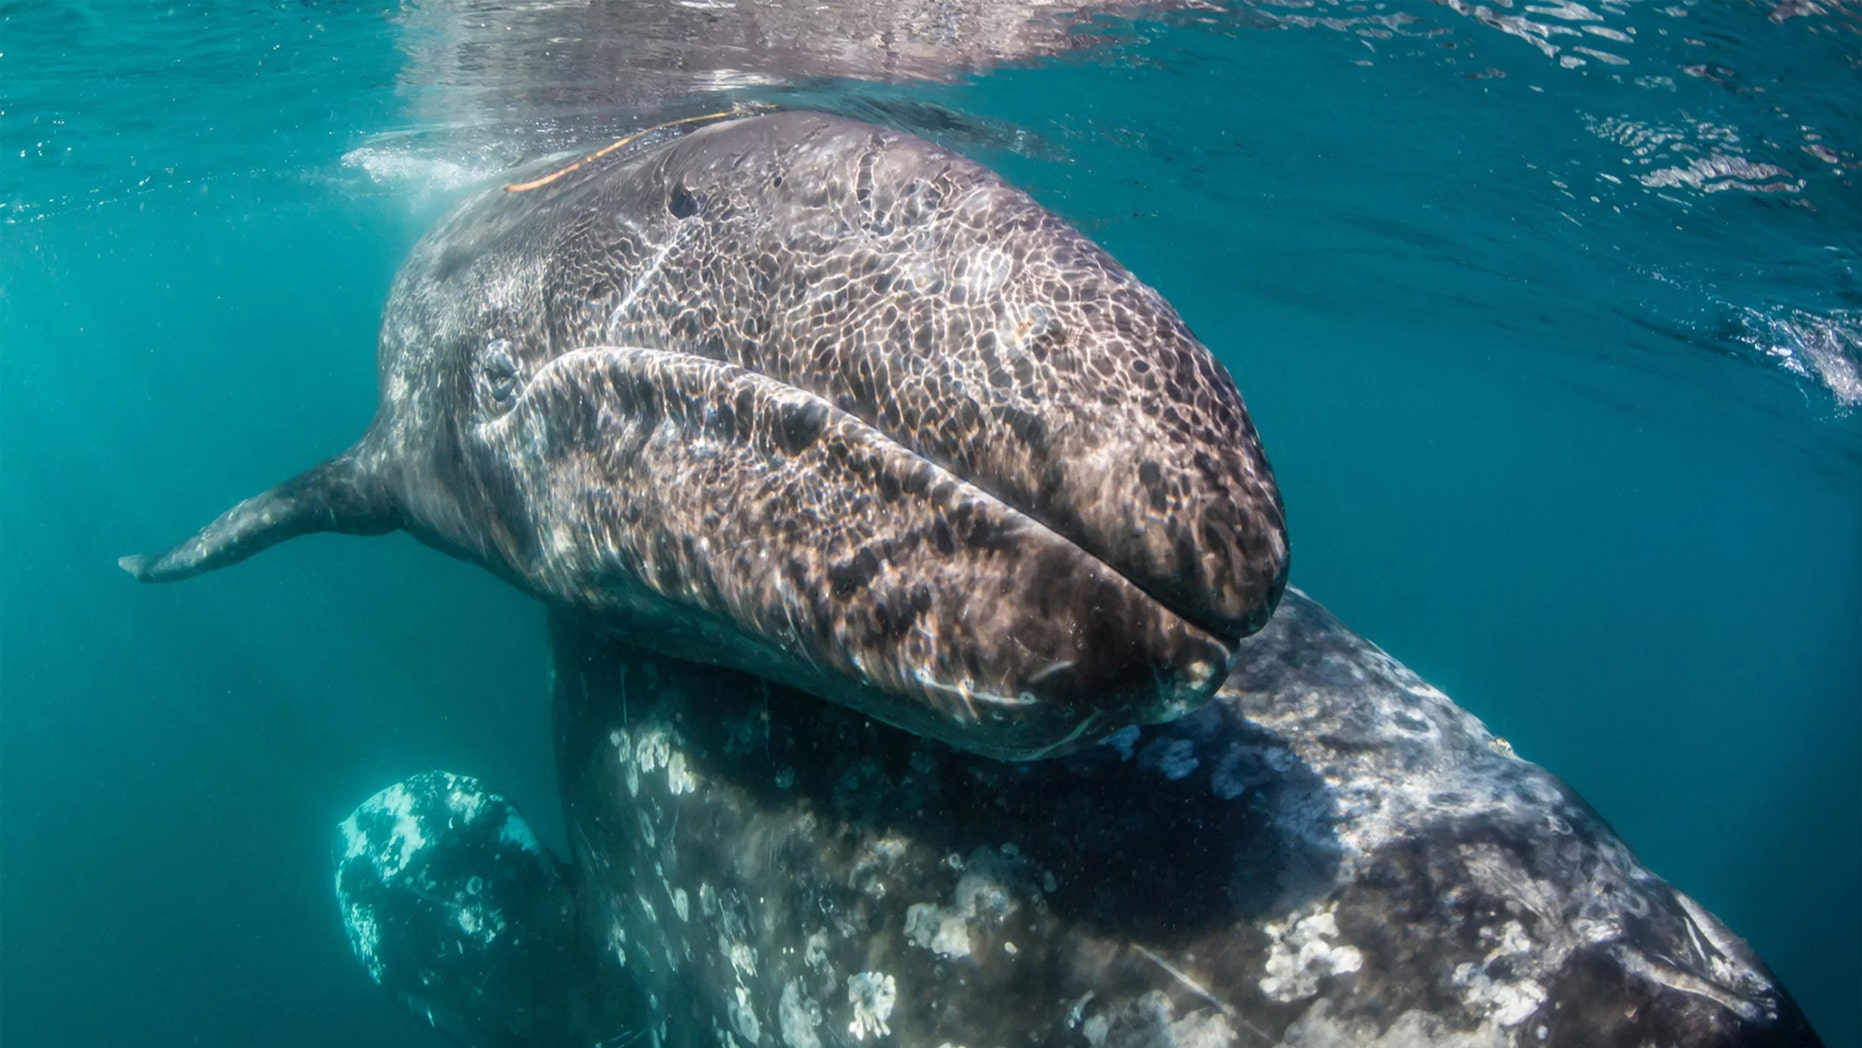 Pliny the Elder wrote in the first century A.D. about gray whale (Eschrichtius robustus) mothers and calves, like these here, getting attacked by killer whales near the Strait of Gibraltar. Now scientists believe him. Credit: robertharding/Alamy